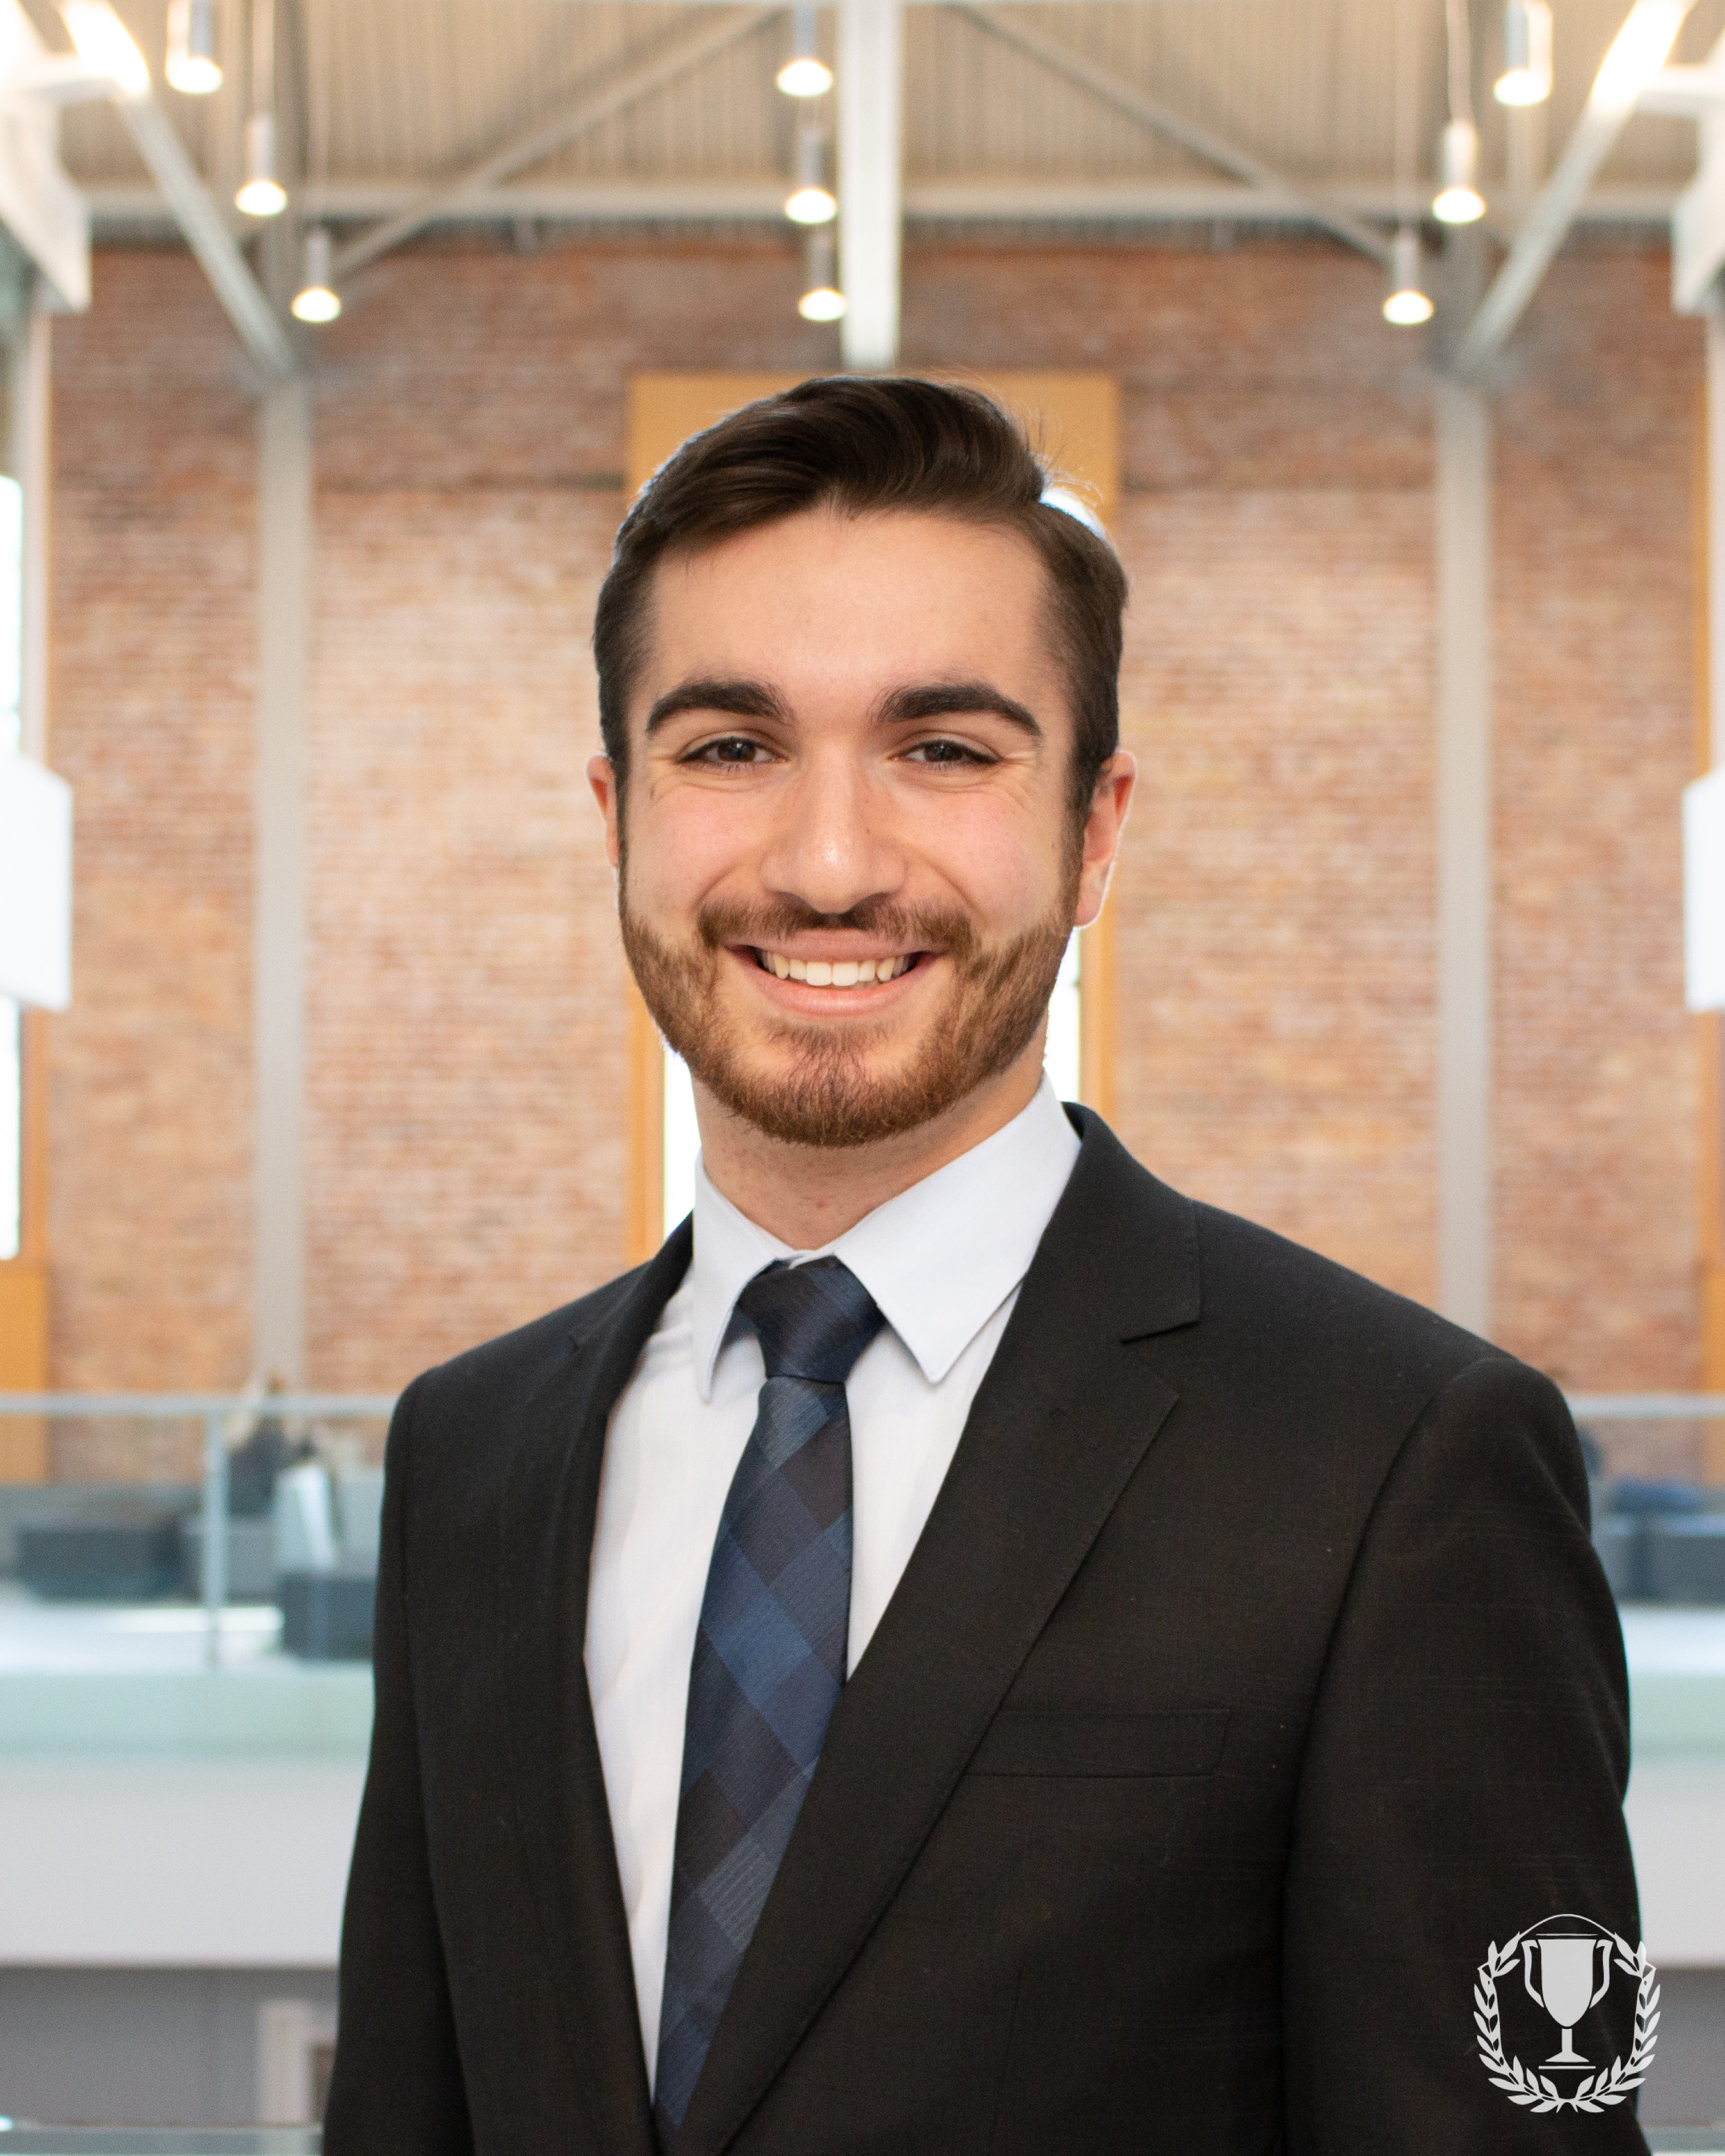 Kayvon Mihan - Finance Officer   Kayvon is overwhelmed with excitement as he joins I.C.B.C. in its 42nd year as the Finance Officer. He is looking forward to working with all members of the team to ensure continued solvency and financial stability for the next 42 years of I.C.B.C.'s legacy. Outside of the conference, Kayvon is involved at Queen's as a University Senator for the Commerce Society and as an Investment Analyst with Trillium Capital. Last summer, Kayvon completed a summer placement at RBC Royal Bank in Kingston and is looking forward to interning at KPMG in Ottawa for the summer of 2019. In his spare time, Kayvon likes to go flying, play guitar, and spend time with his friends and family! Feel free to reach out to him at kayvon.mihan@queensu.ca or visit his website at kayvonmihan.com